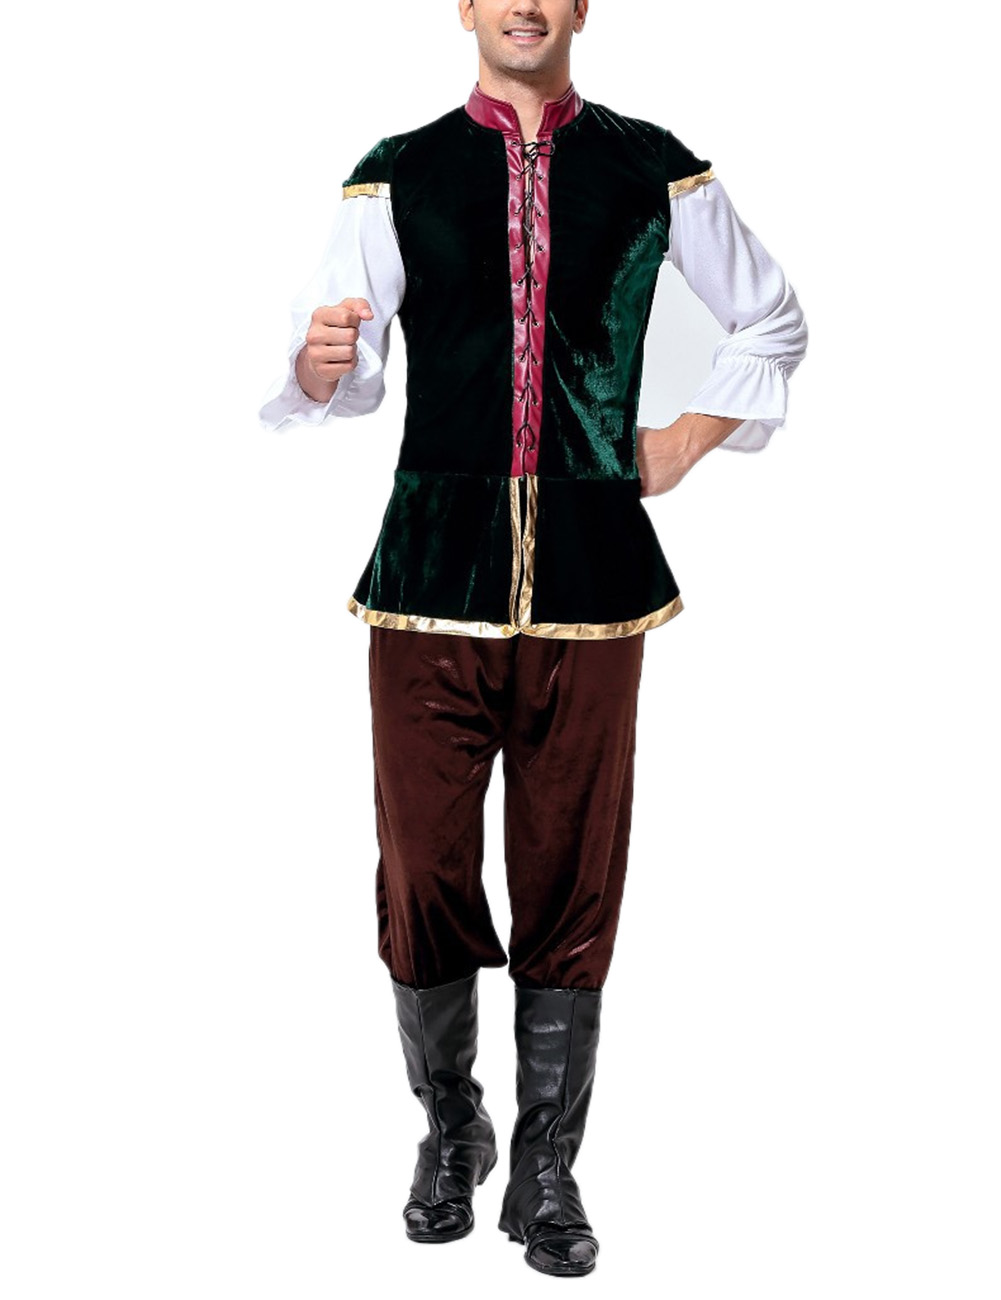 Men's Oktoberfest Costumes Halloween Cosplay Suit for Performance Show as shown_free size